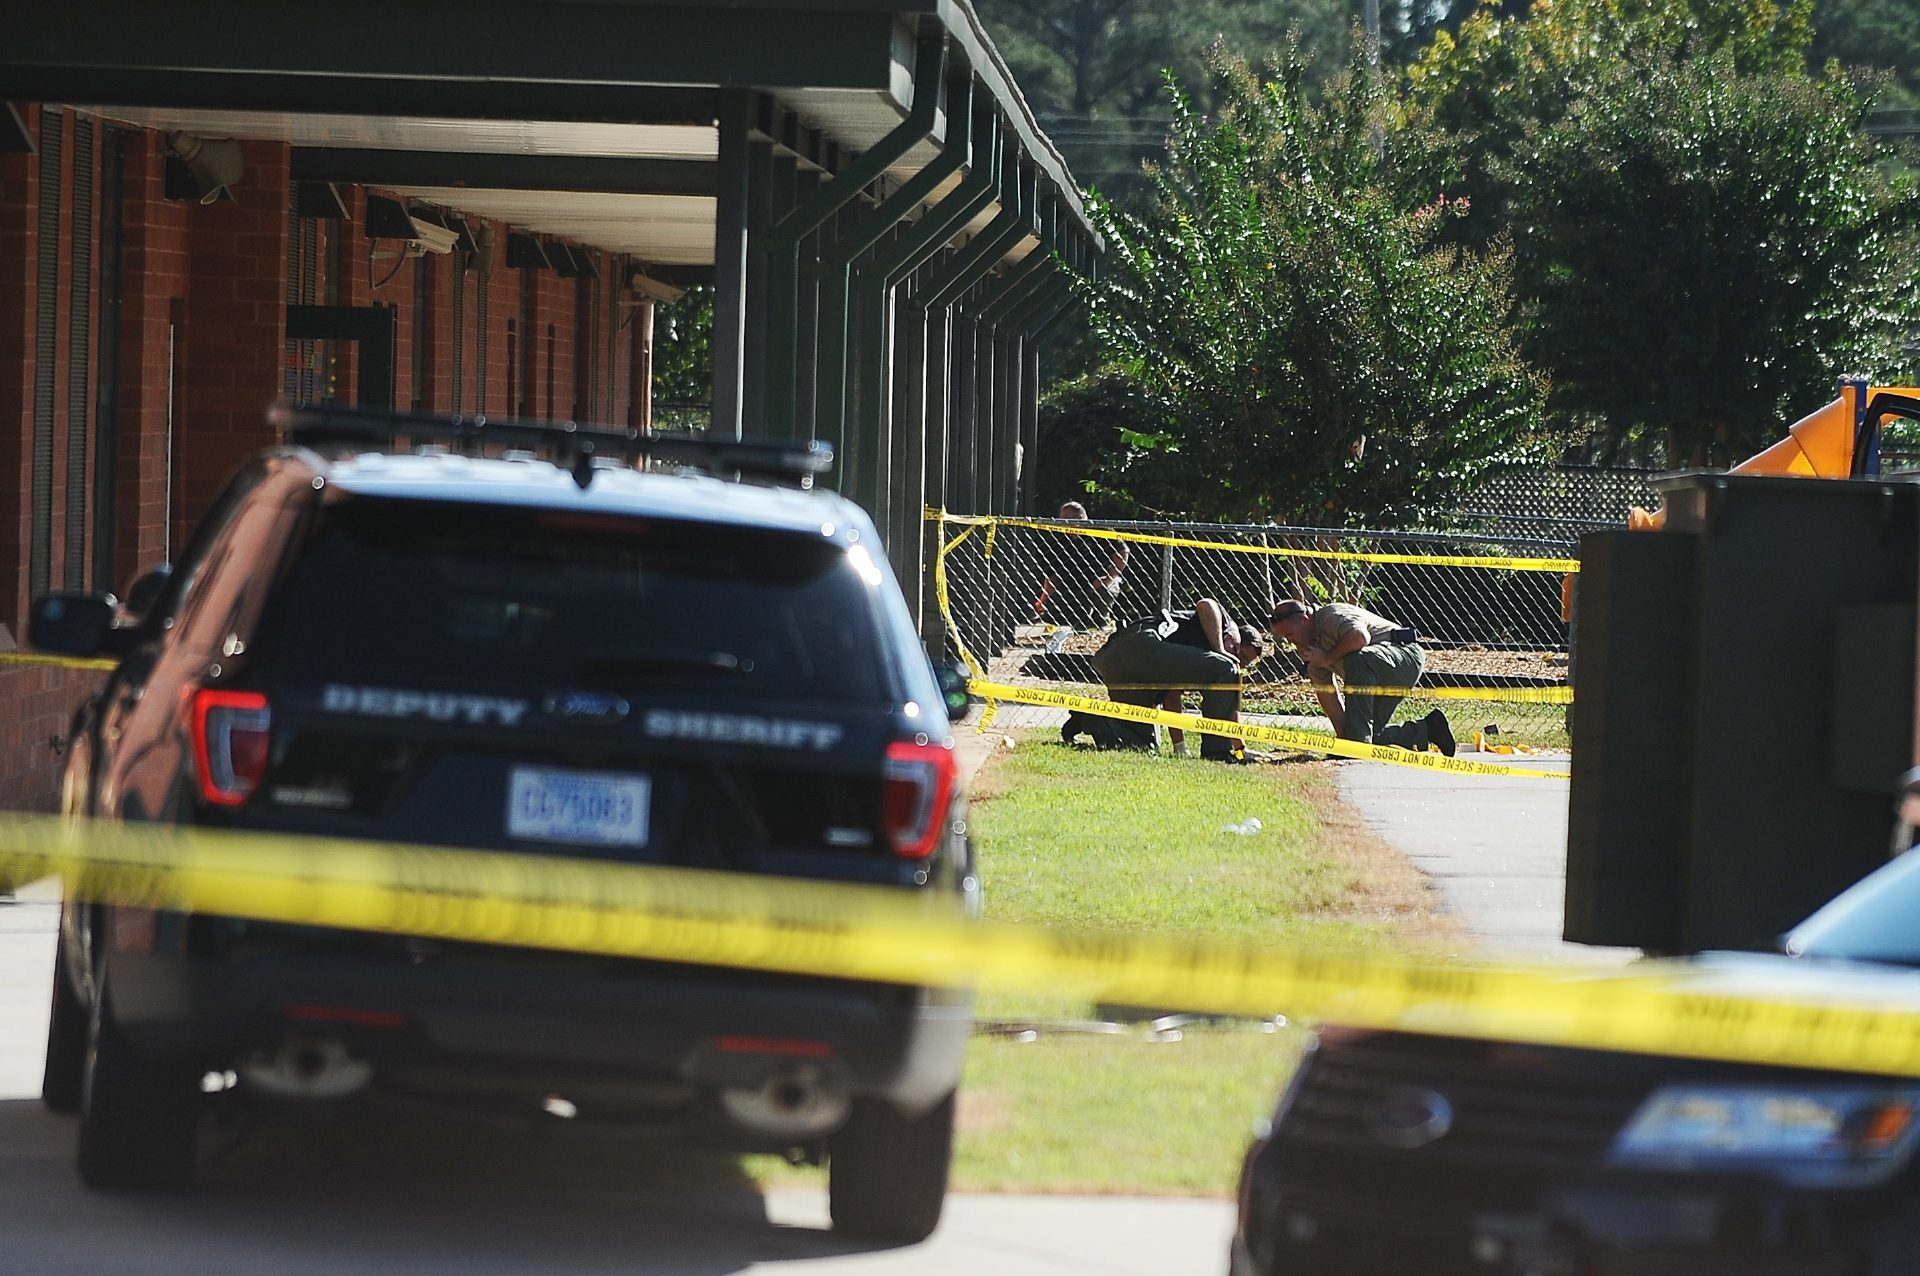 Members of law enforcement investigate an area at Townville Elementary School, where a teenager opened fire.